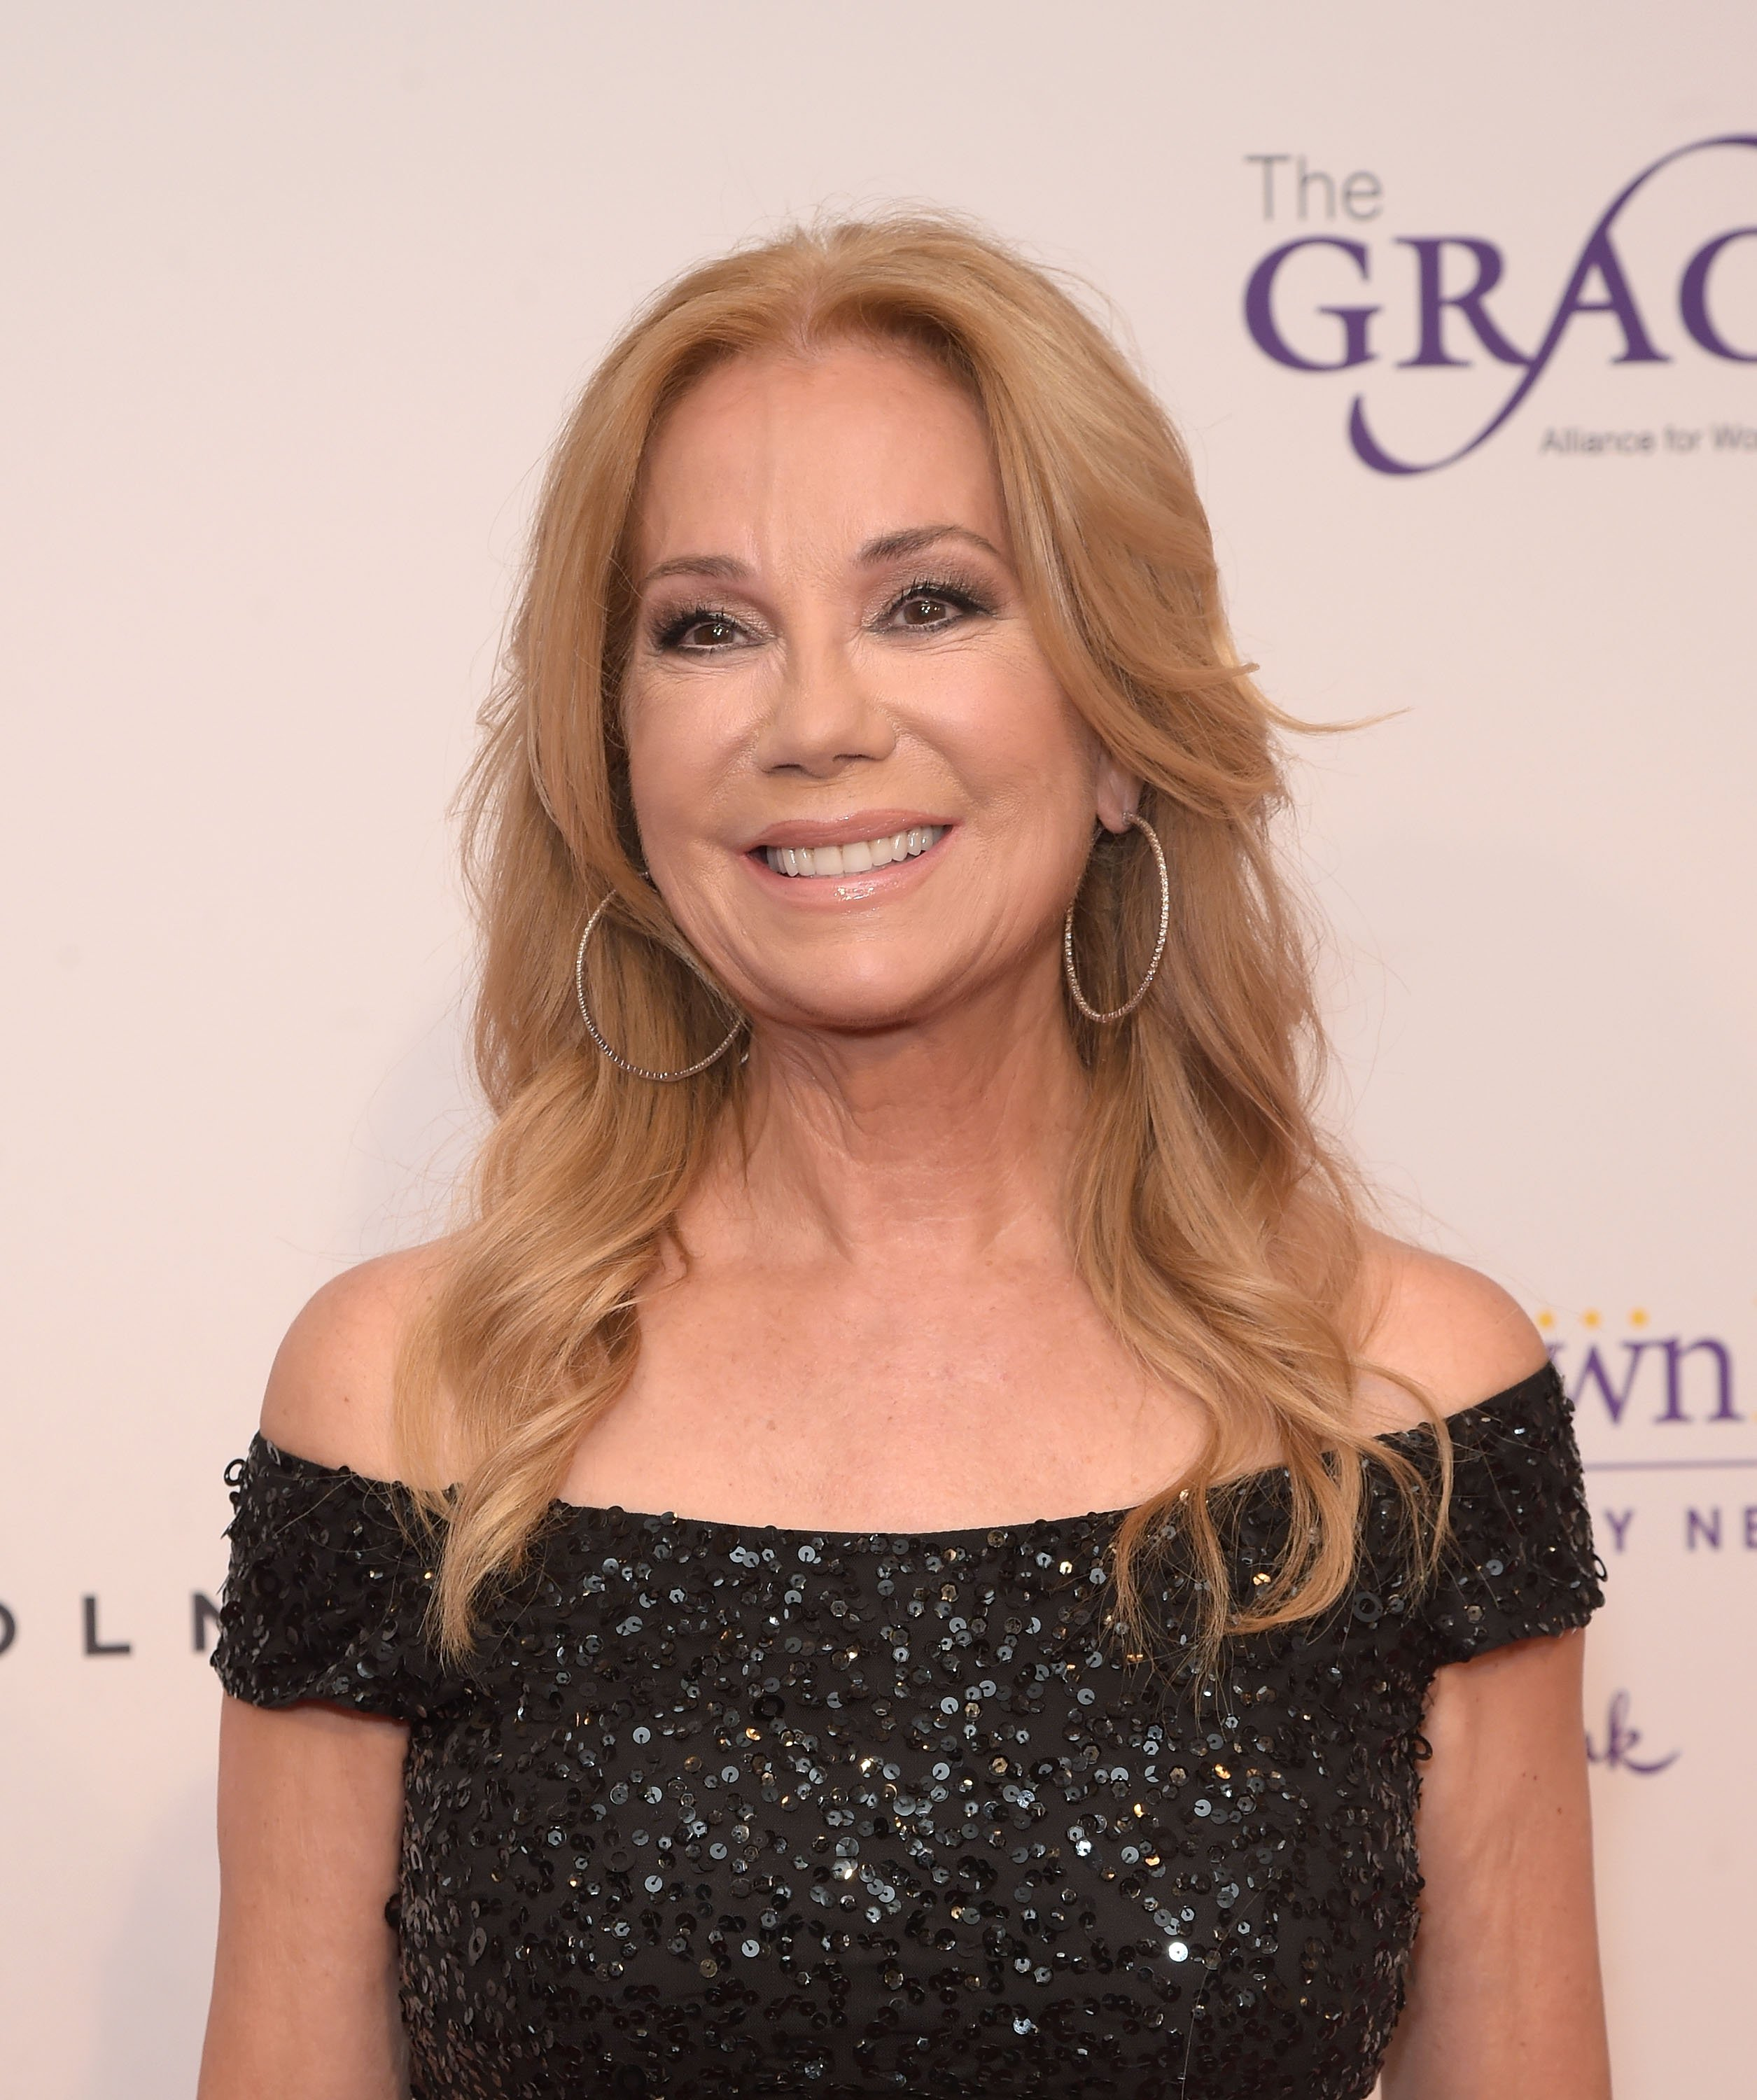 Image Credits: Getty Images / Jason Kempin | Kathie Lee Gifford attends the 41st Annual Gracie Awards Gala at the Beverly Wilshire Four Seasons Hotel on May 24, 2016 in Beverly Hills, California.